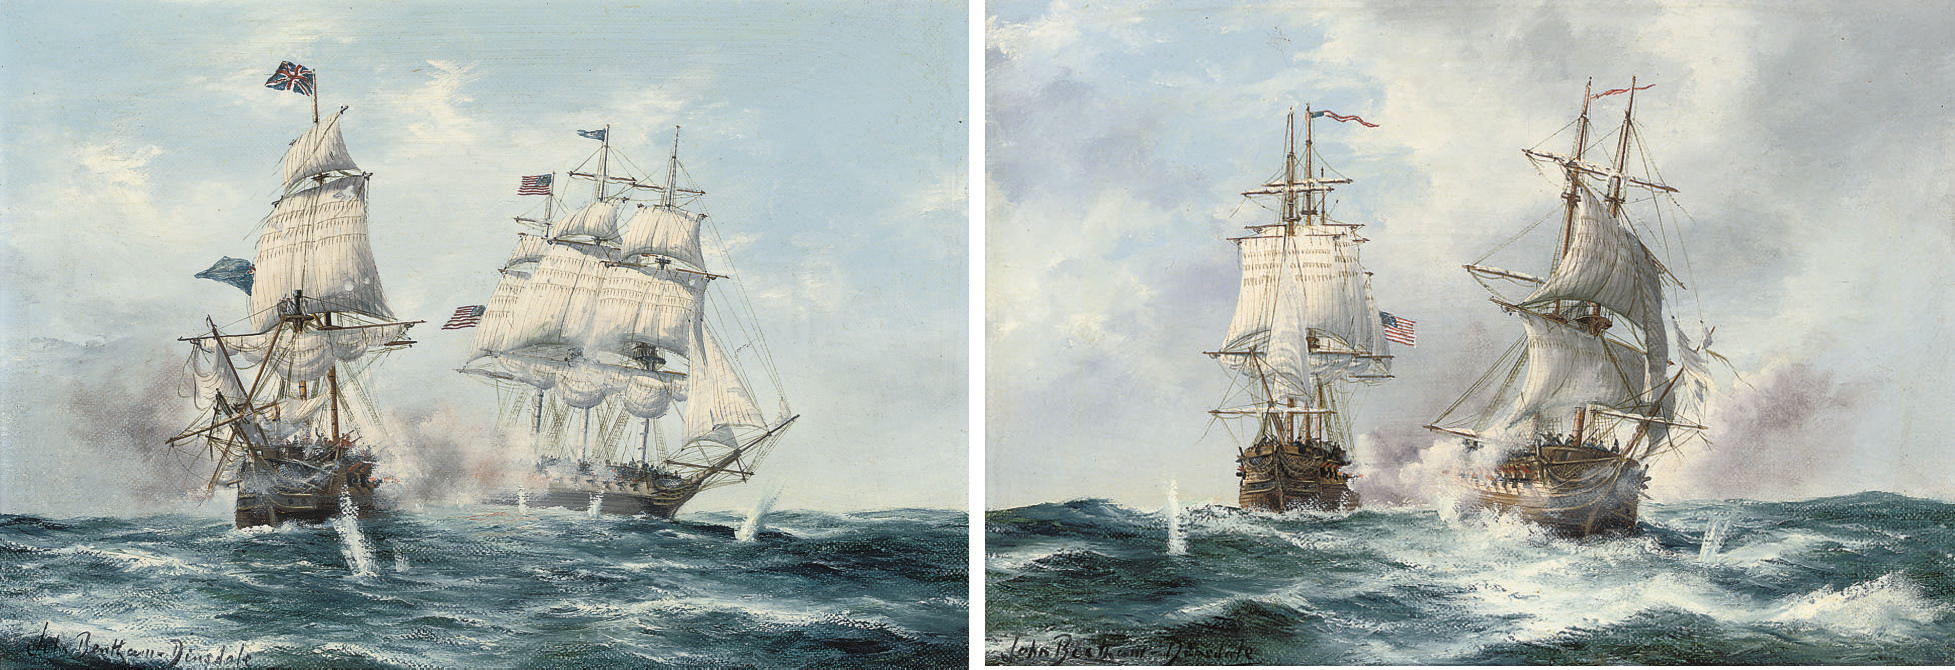 The action between Java and Constitution, 29th December, 1812; and The engagement between H.M.S. Frolic and U.S.S. Wasp, 18th October, 1812 (both illustrated)